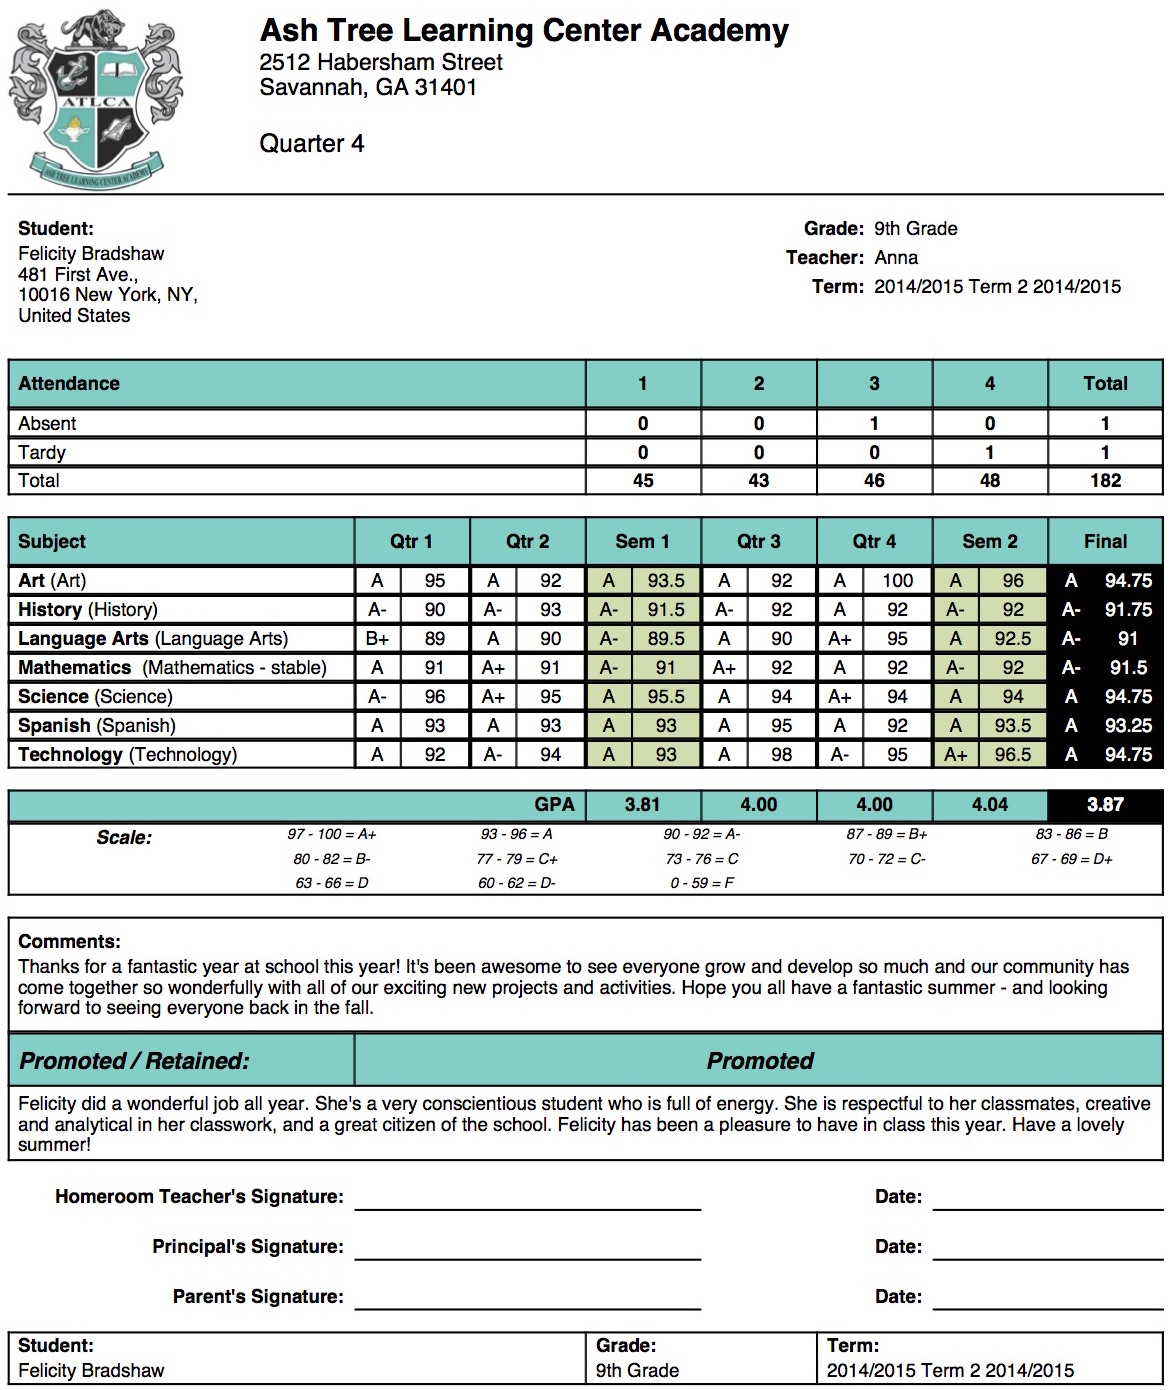 Ash tree learning center academy report card template for Free report card template